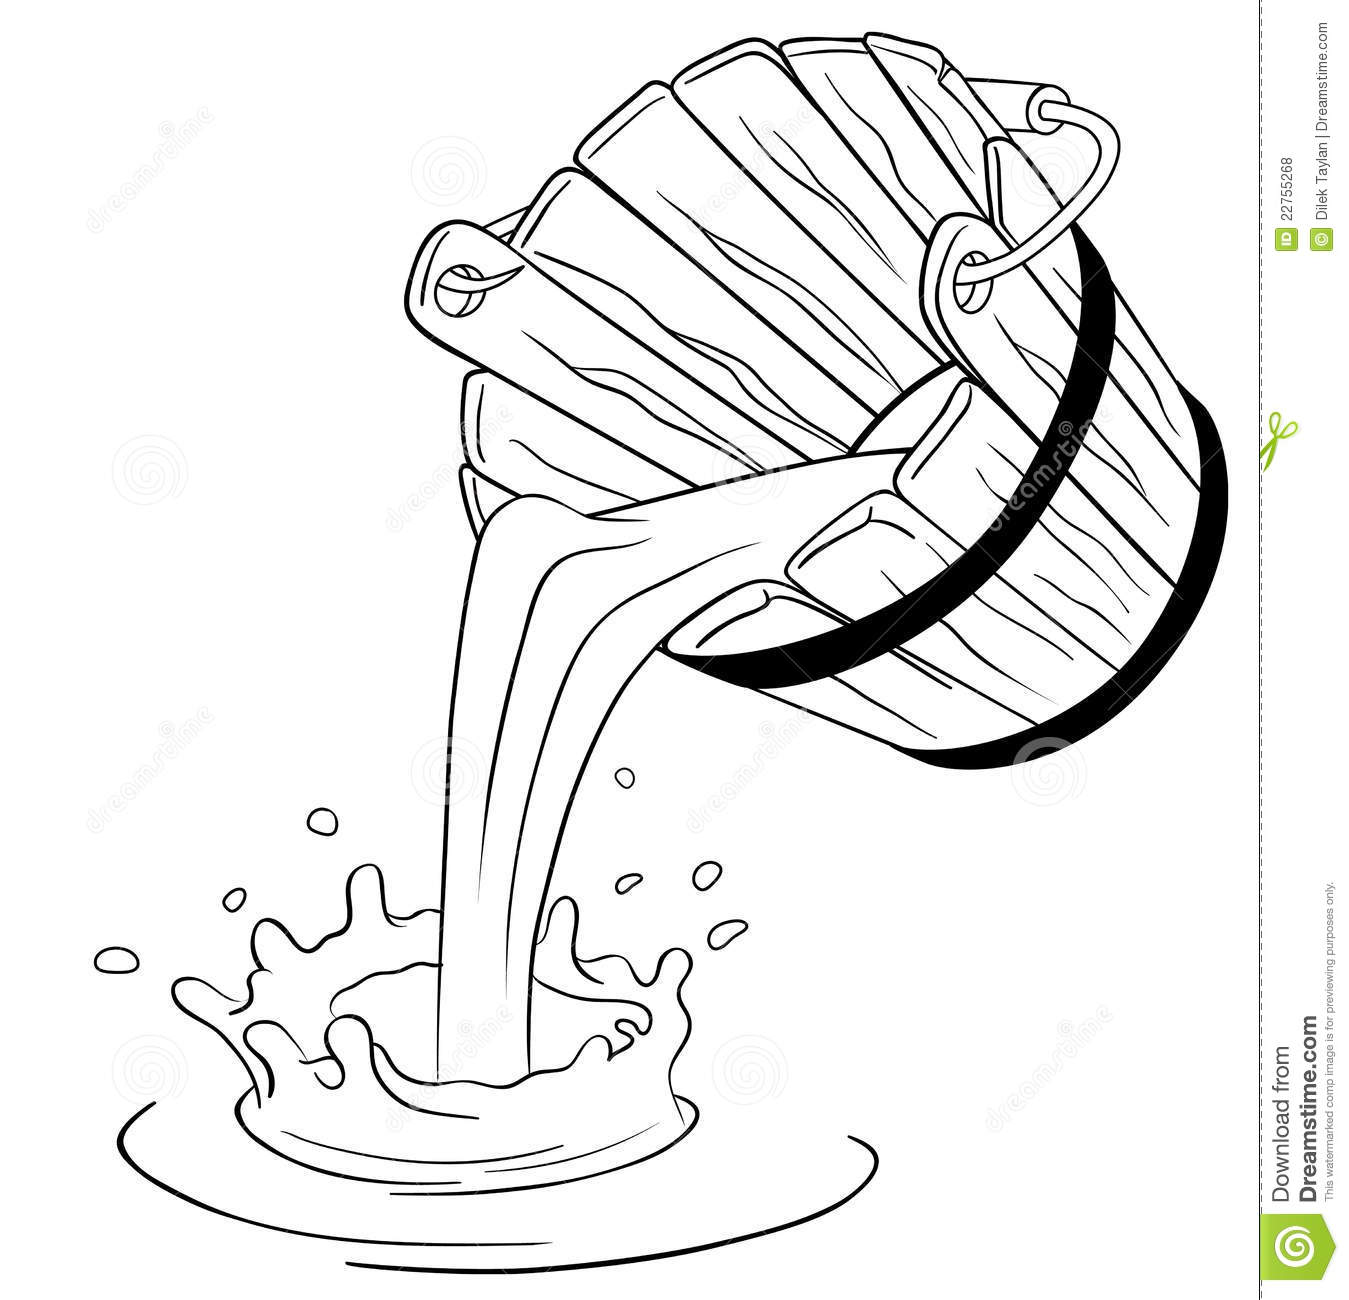 Pouring Milk From Bucket Royalty Free Stock Photos   Image  22755268